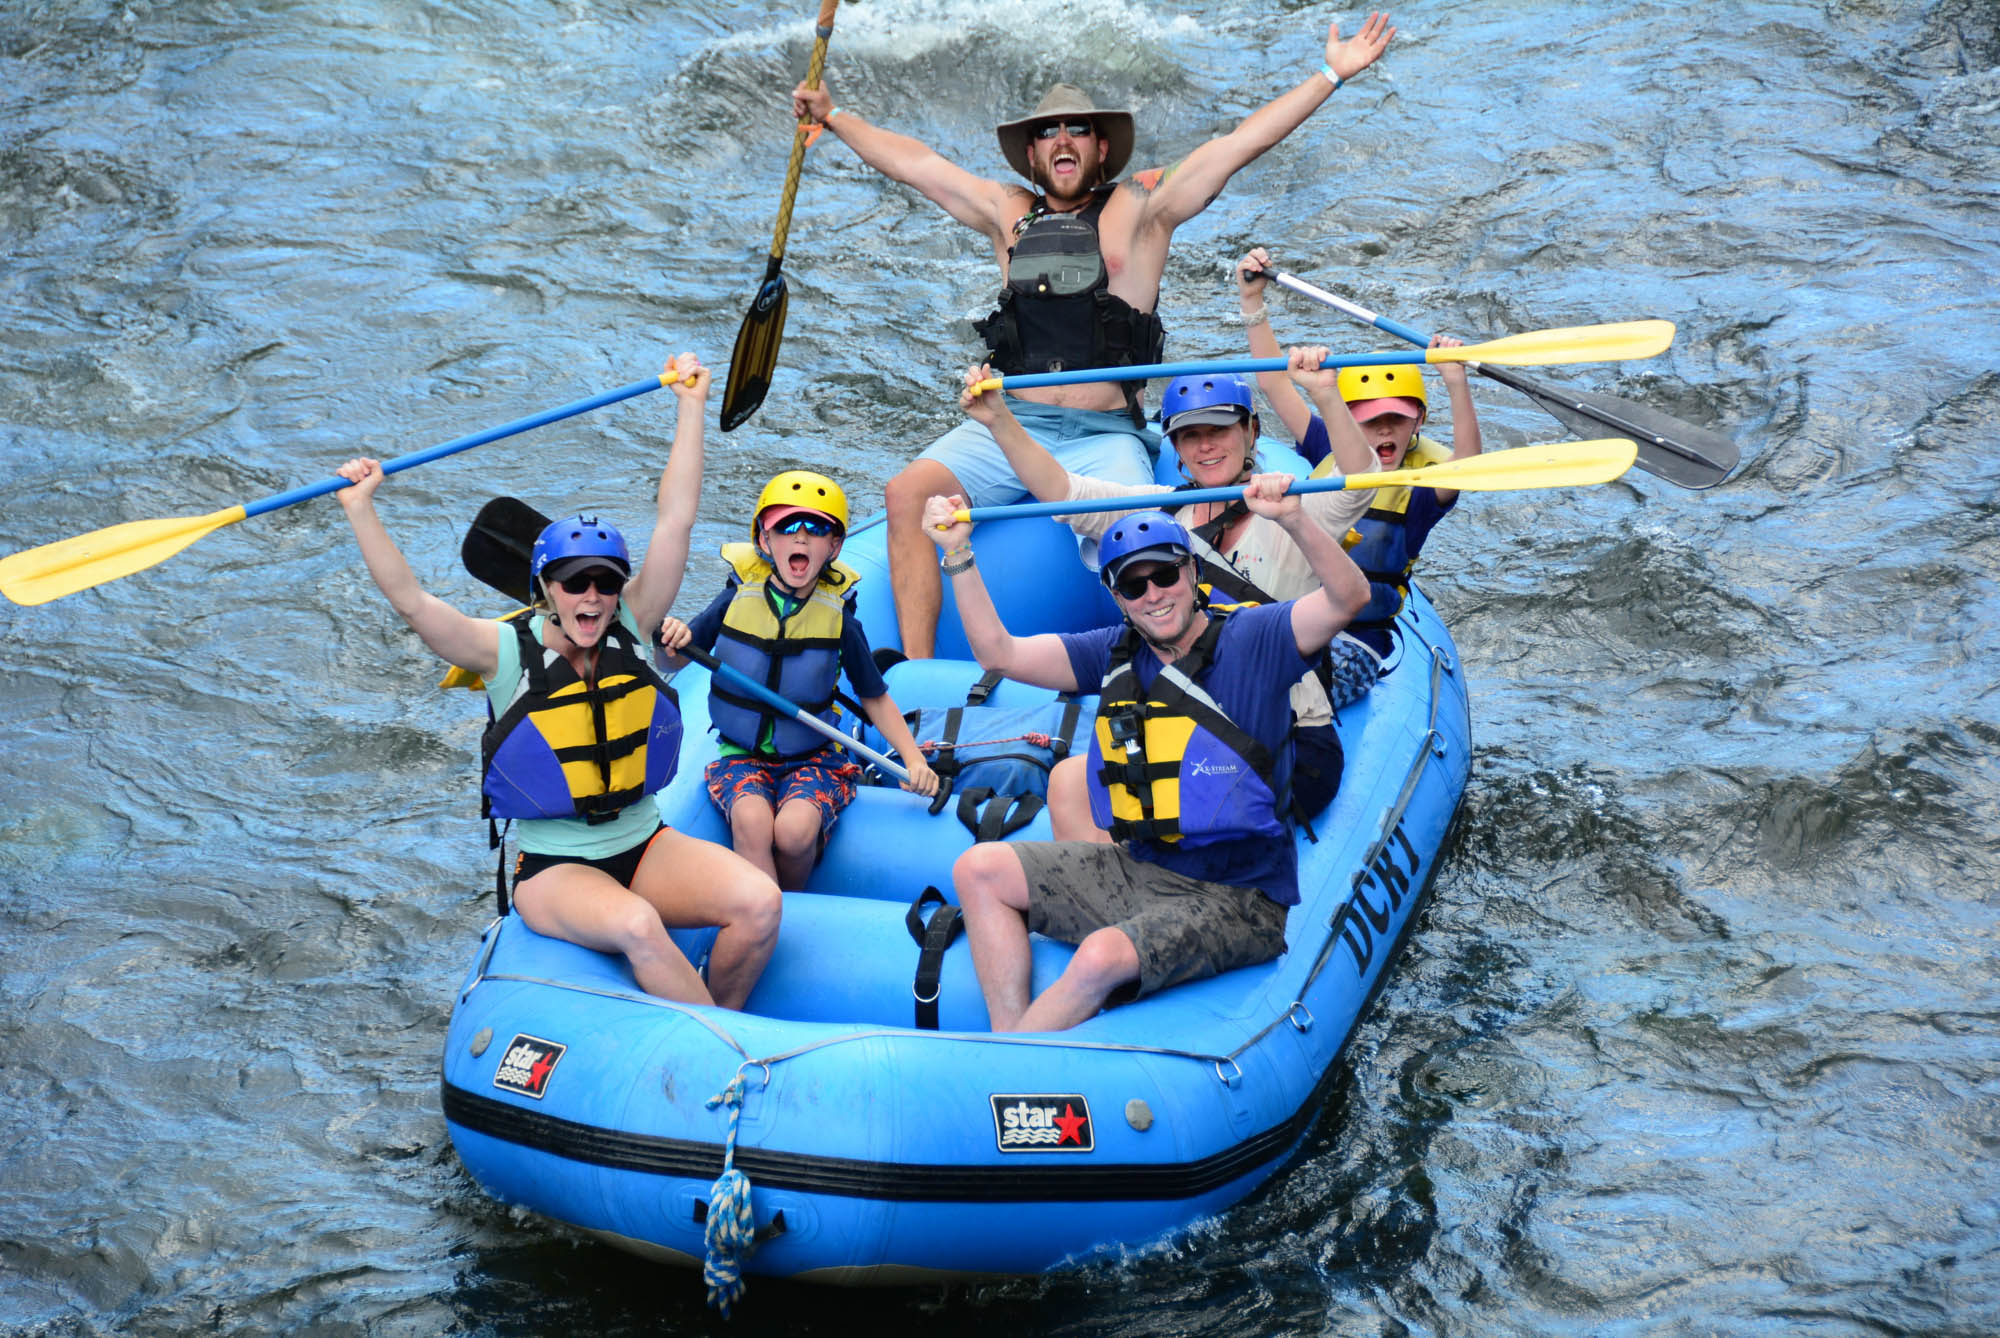 Truckee River Whitewater Rafting